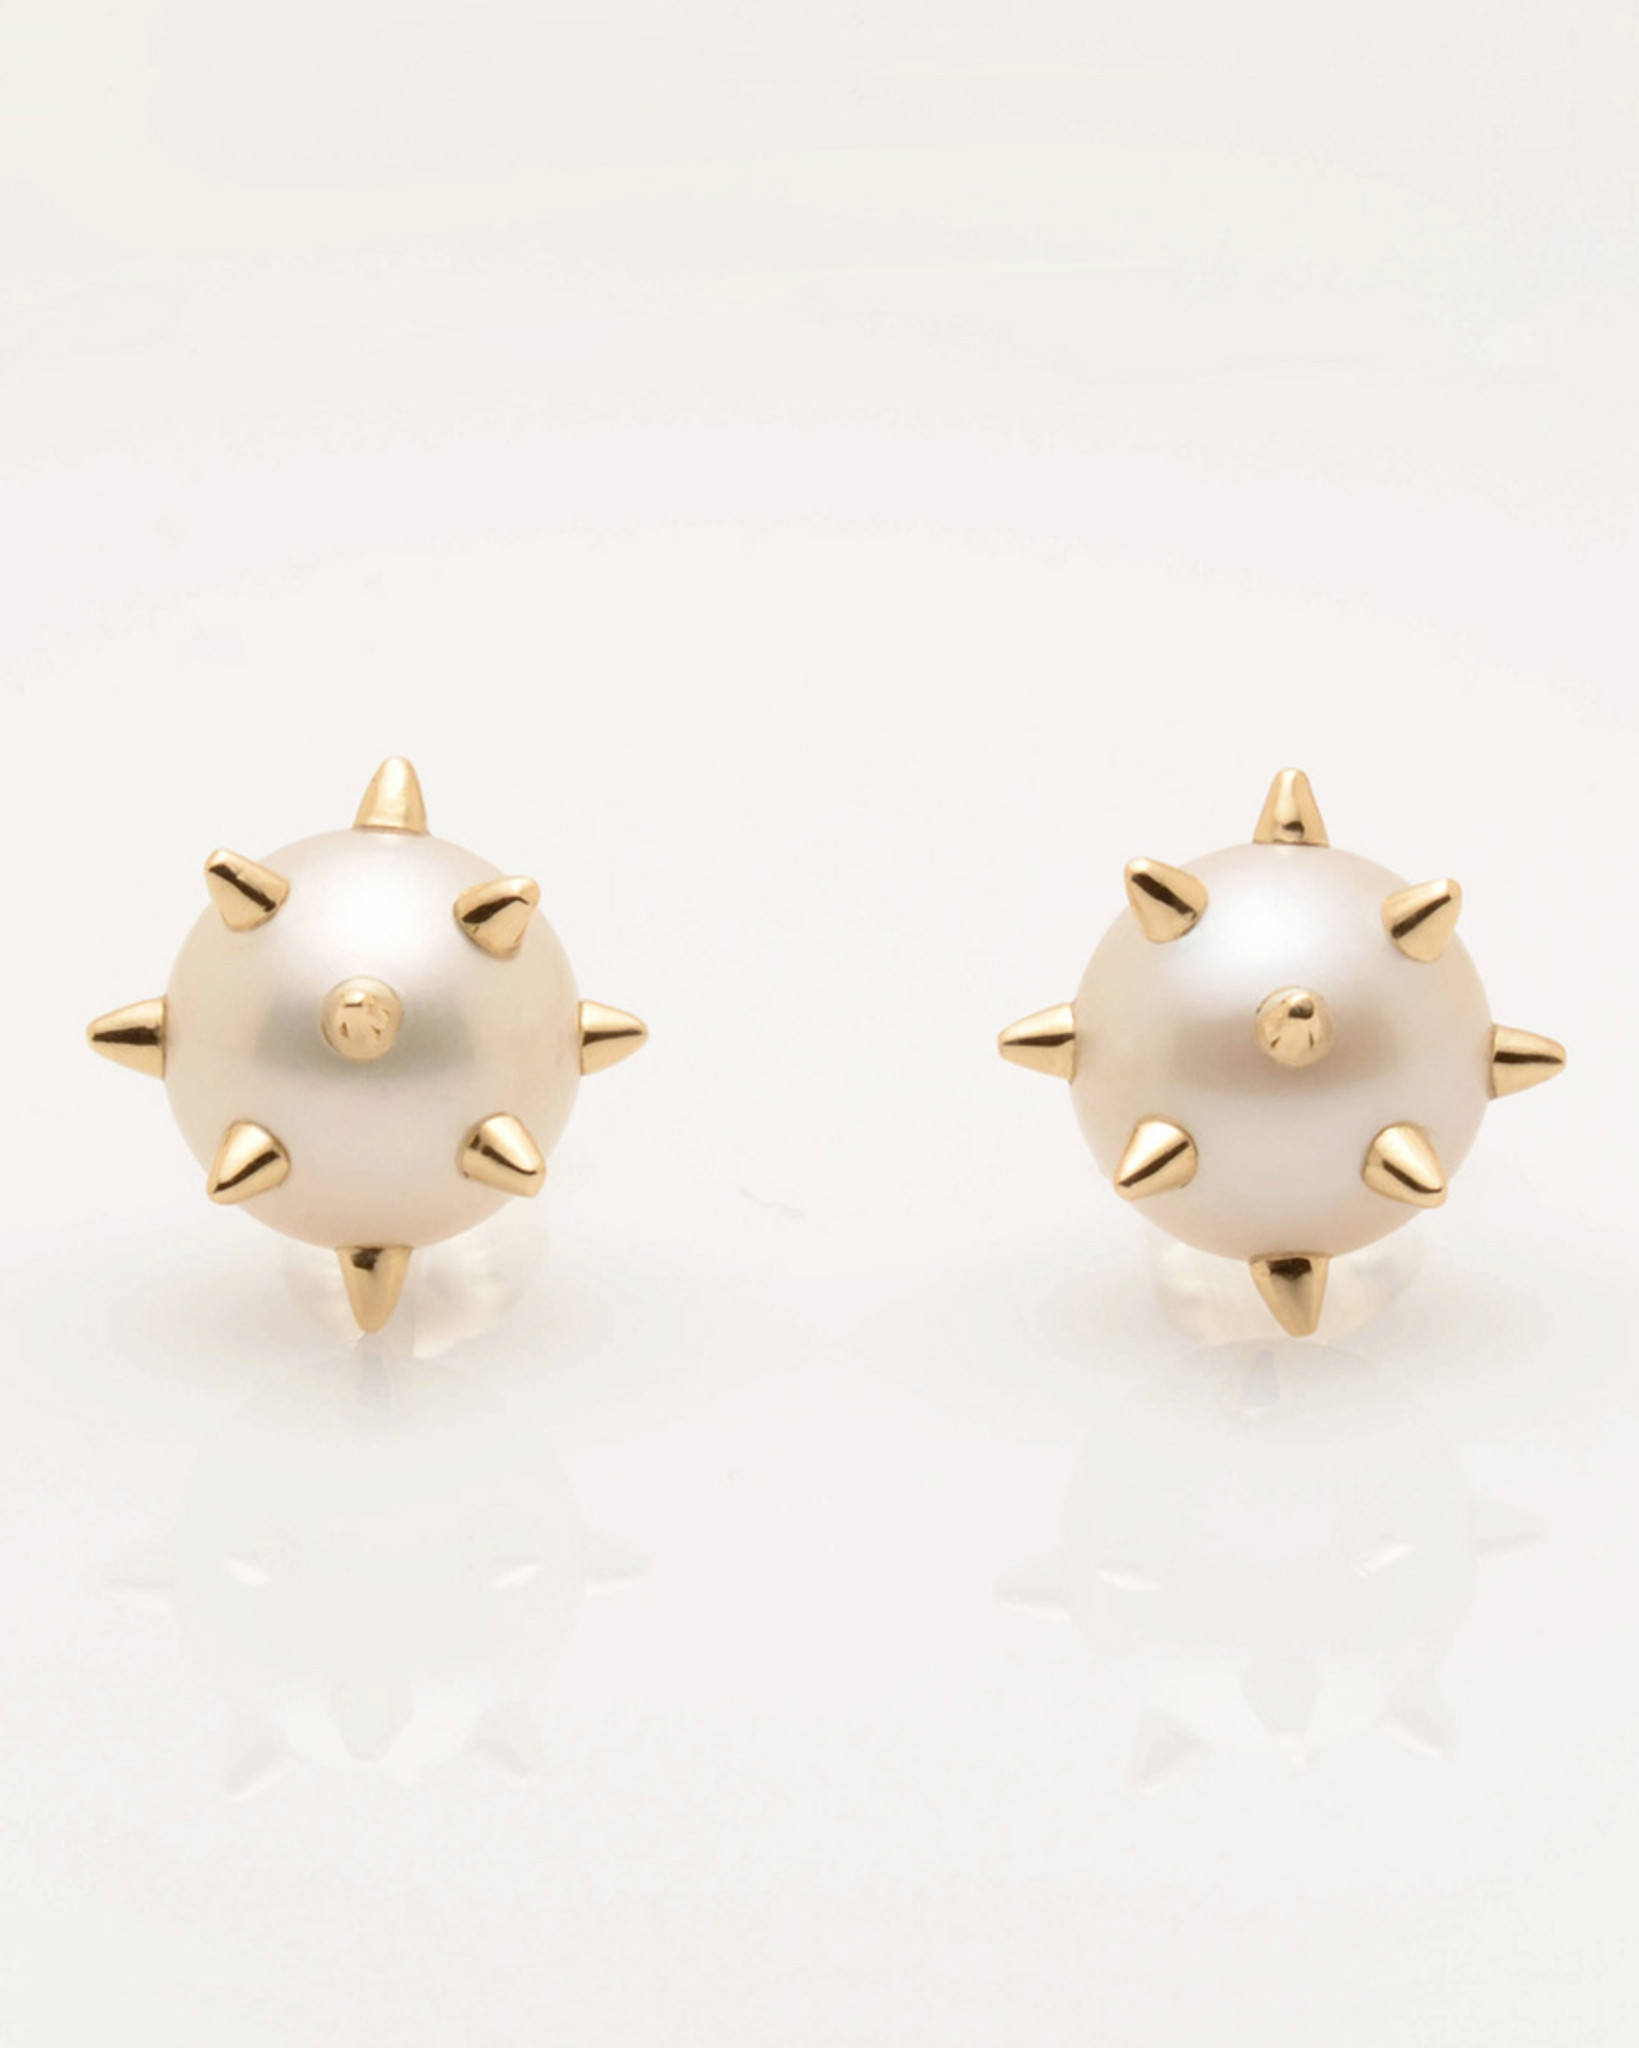 bride a bhldn pearl earrings in posts xl product gold stud zoom pax